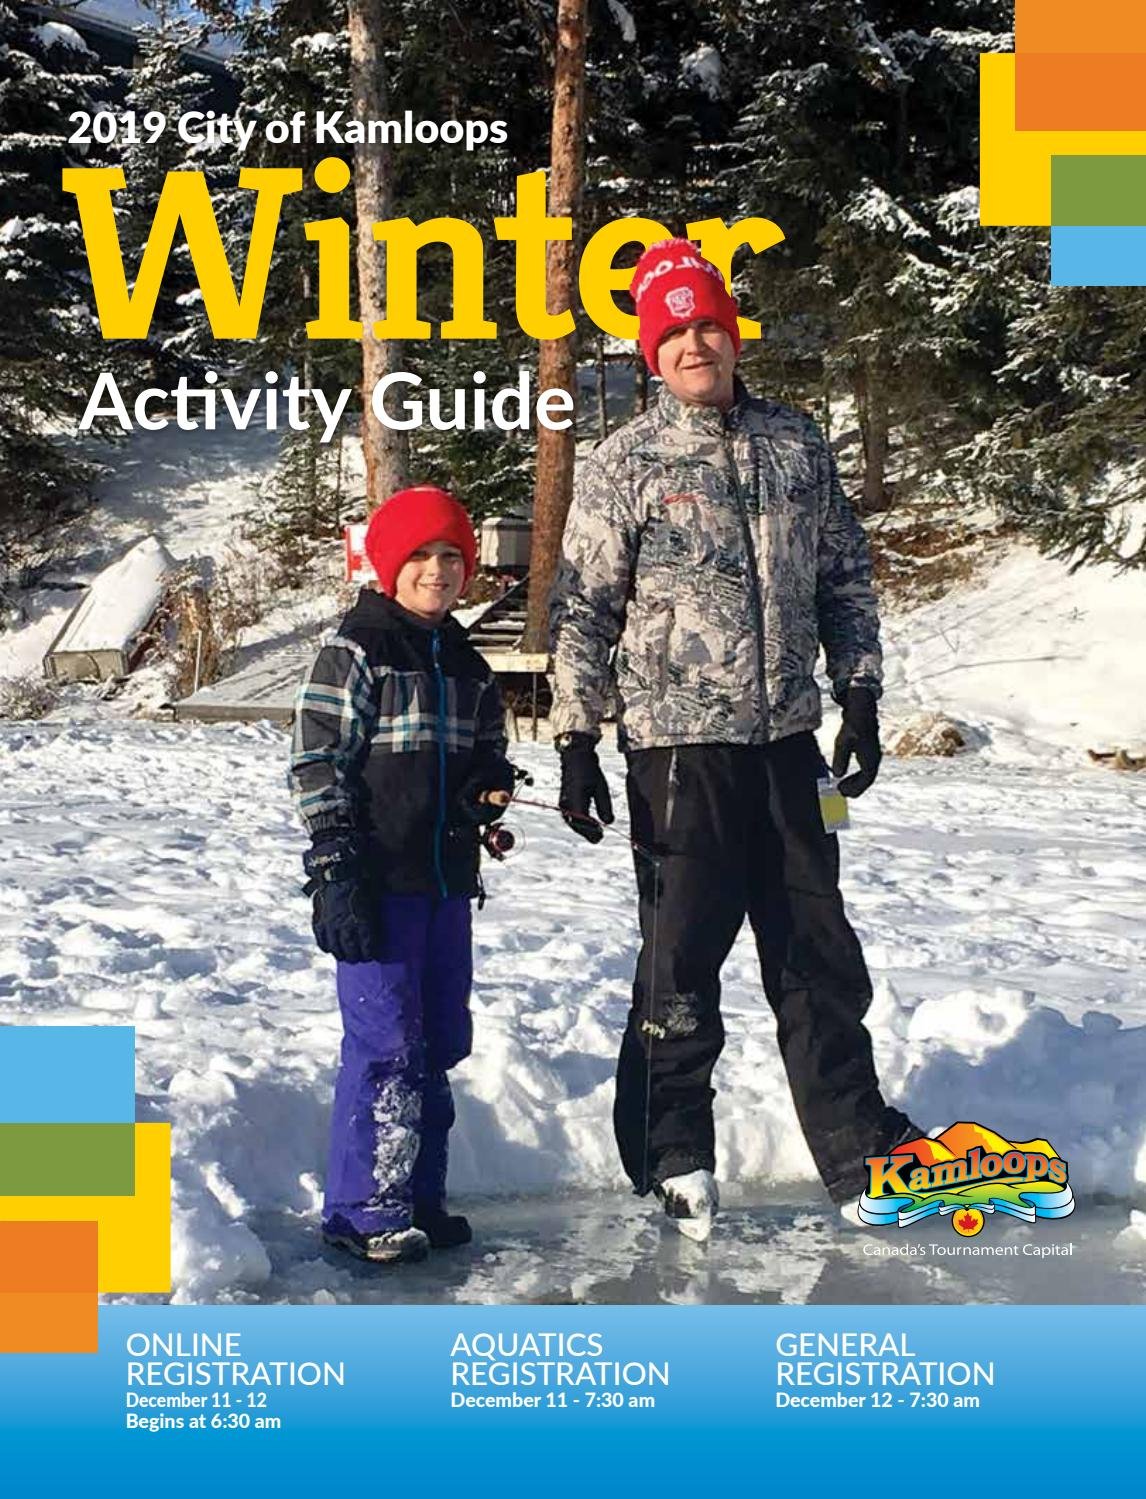 2019 - City of Kamloops Winter Activity Guide by KamloopsThisWeek